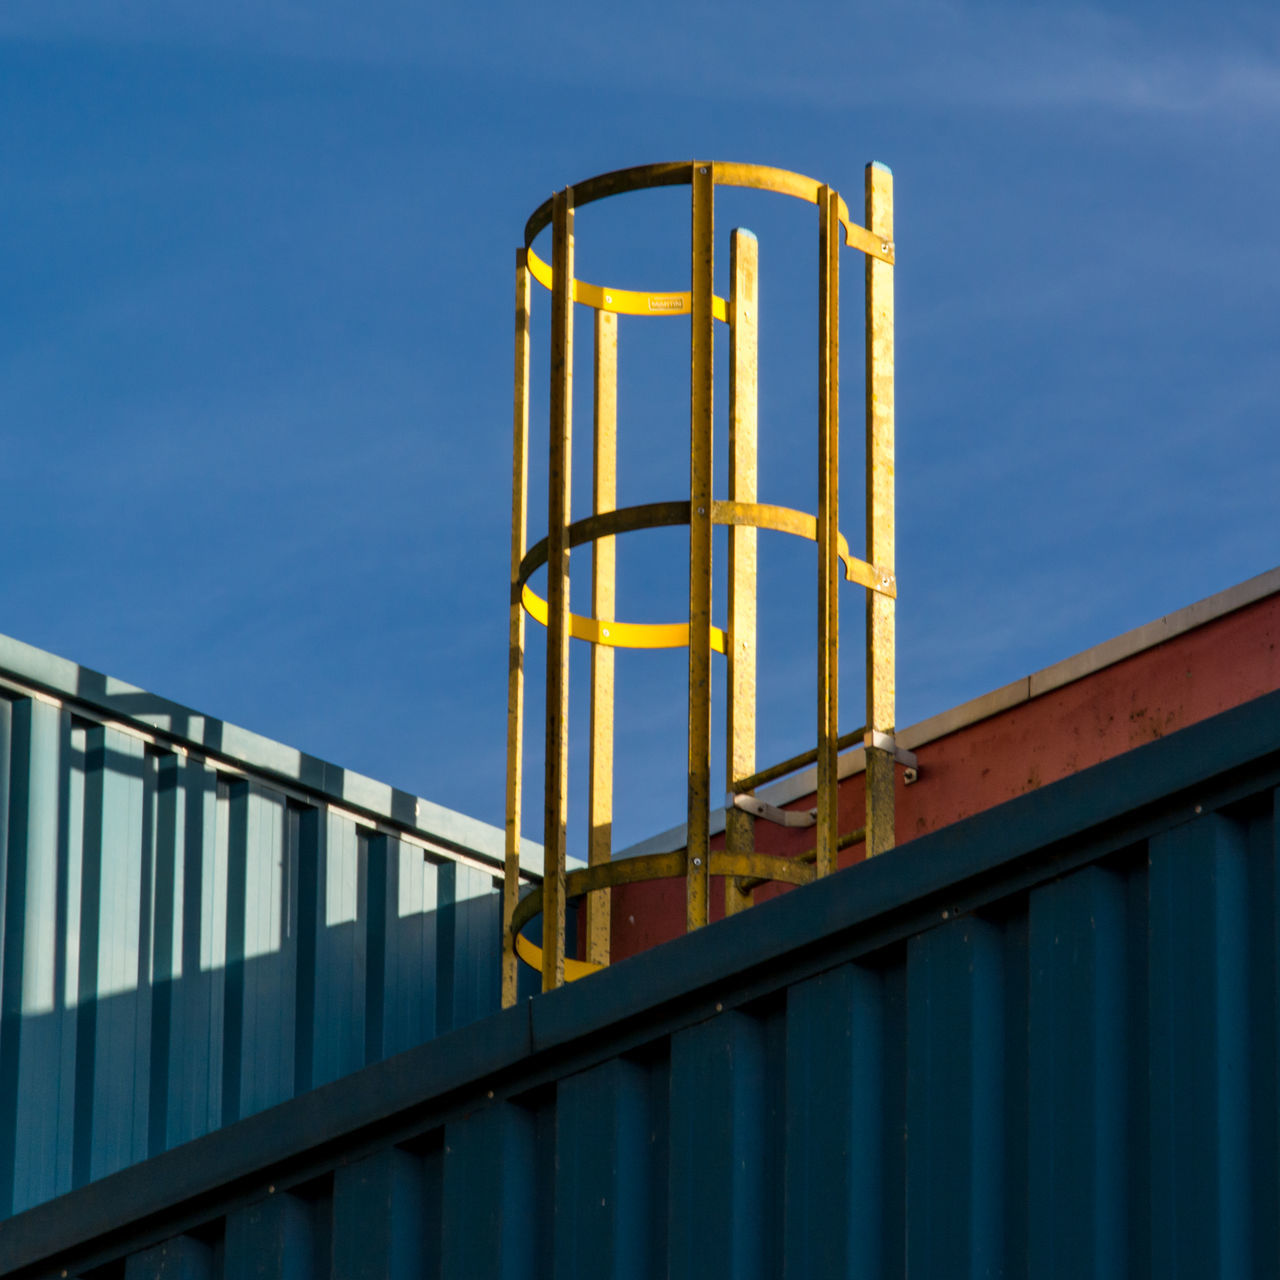 Strictly yellow on blue Architectural Detail Architecture Architecture_collection Built Structure Day Low Angle View Metal No People Outdoors Shadows Sky Urban Geometry Urban Skyline Urbanphotography The City Light Minimalist Architecture Minimalz Premium Collection